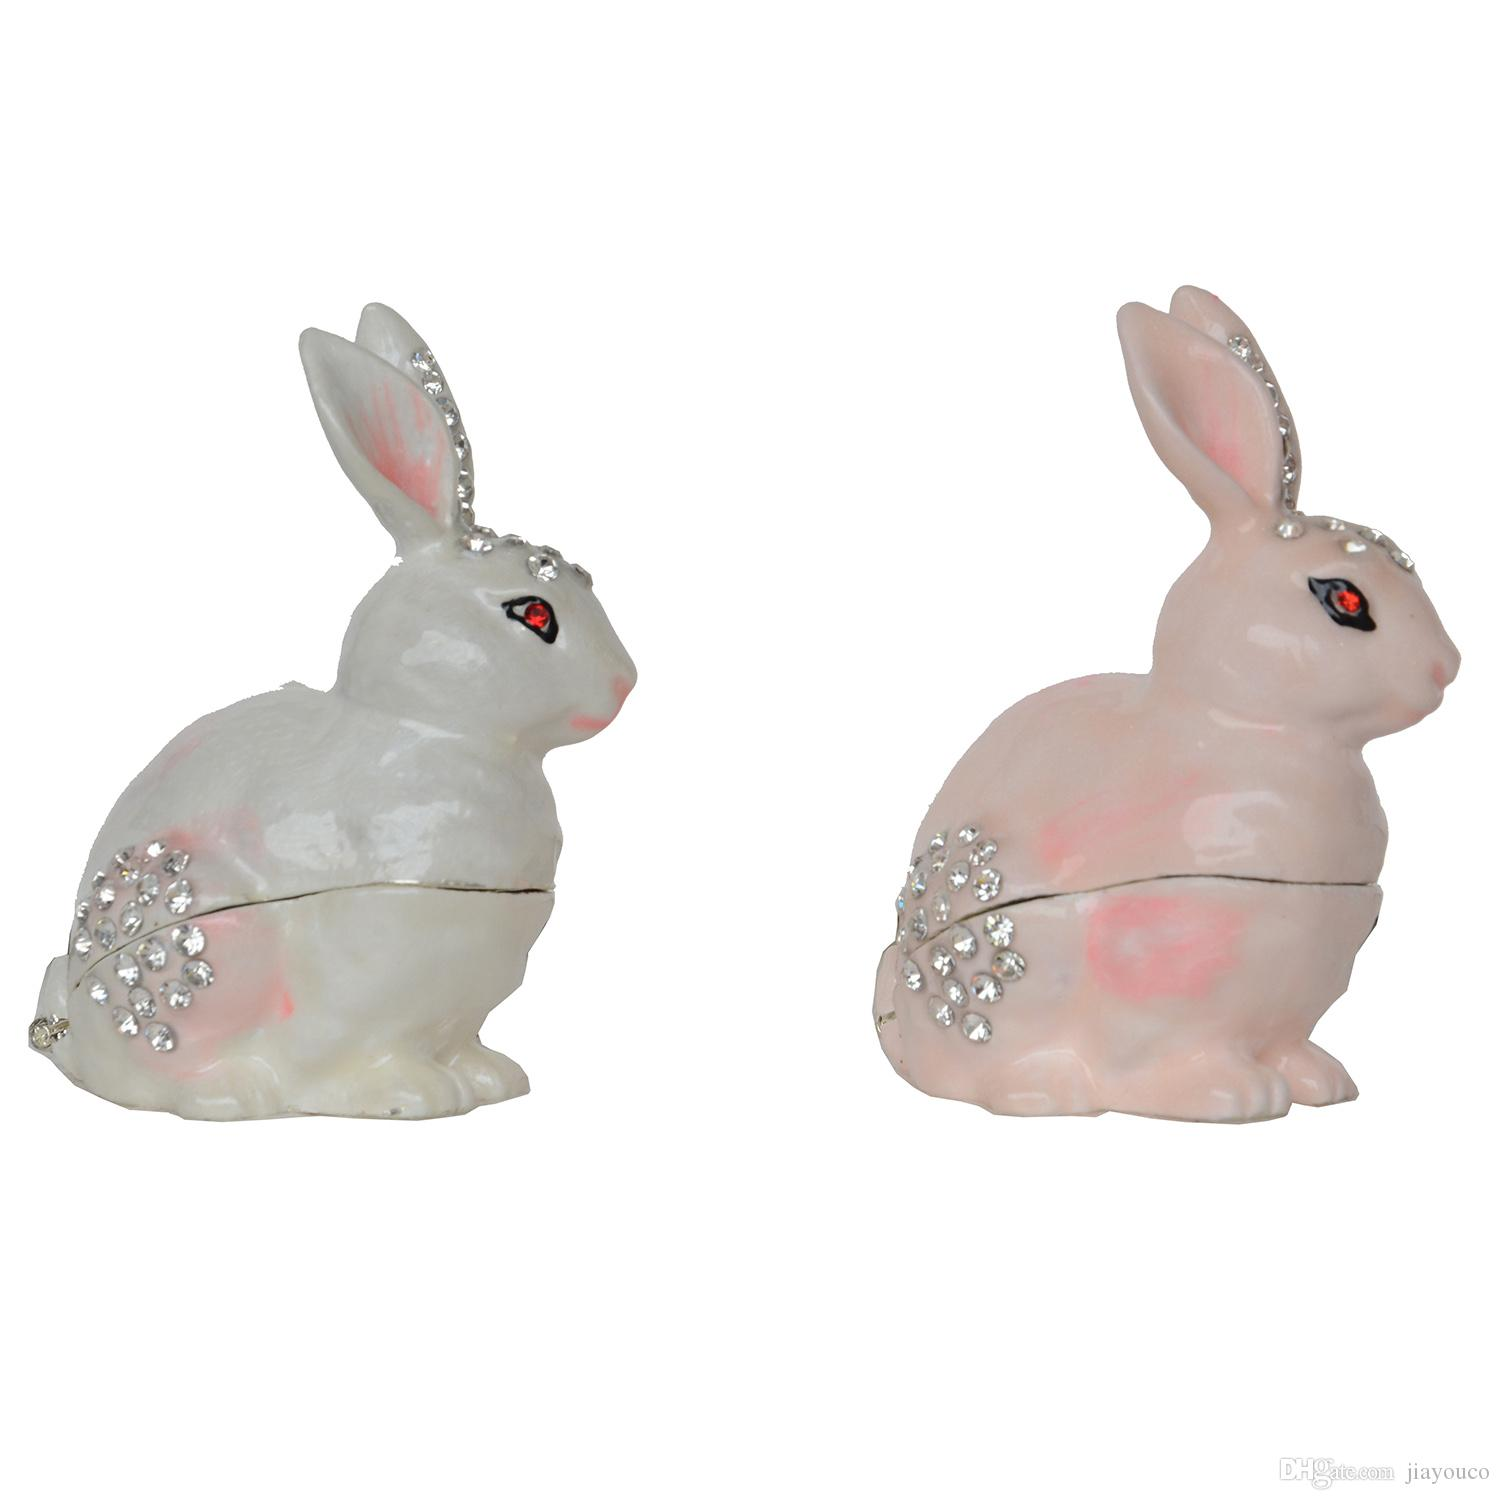 Rabbit Hinged Trinket Jewelry Box Bejeweled Ring Holder Animal Figurine Collectible